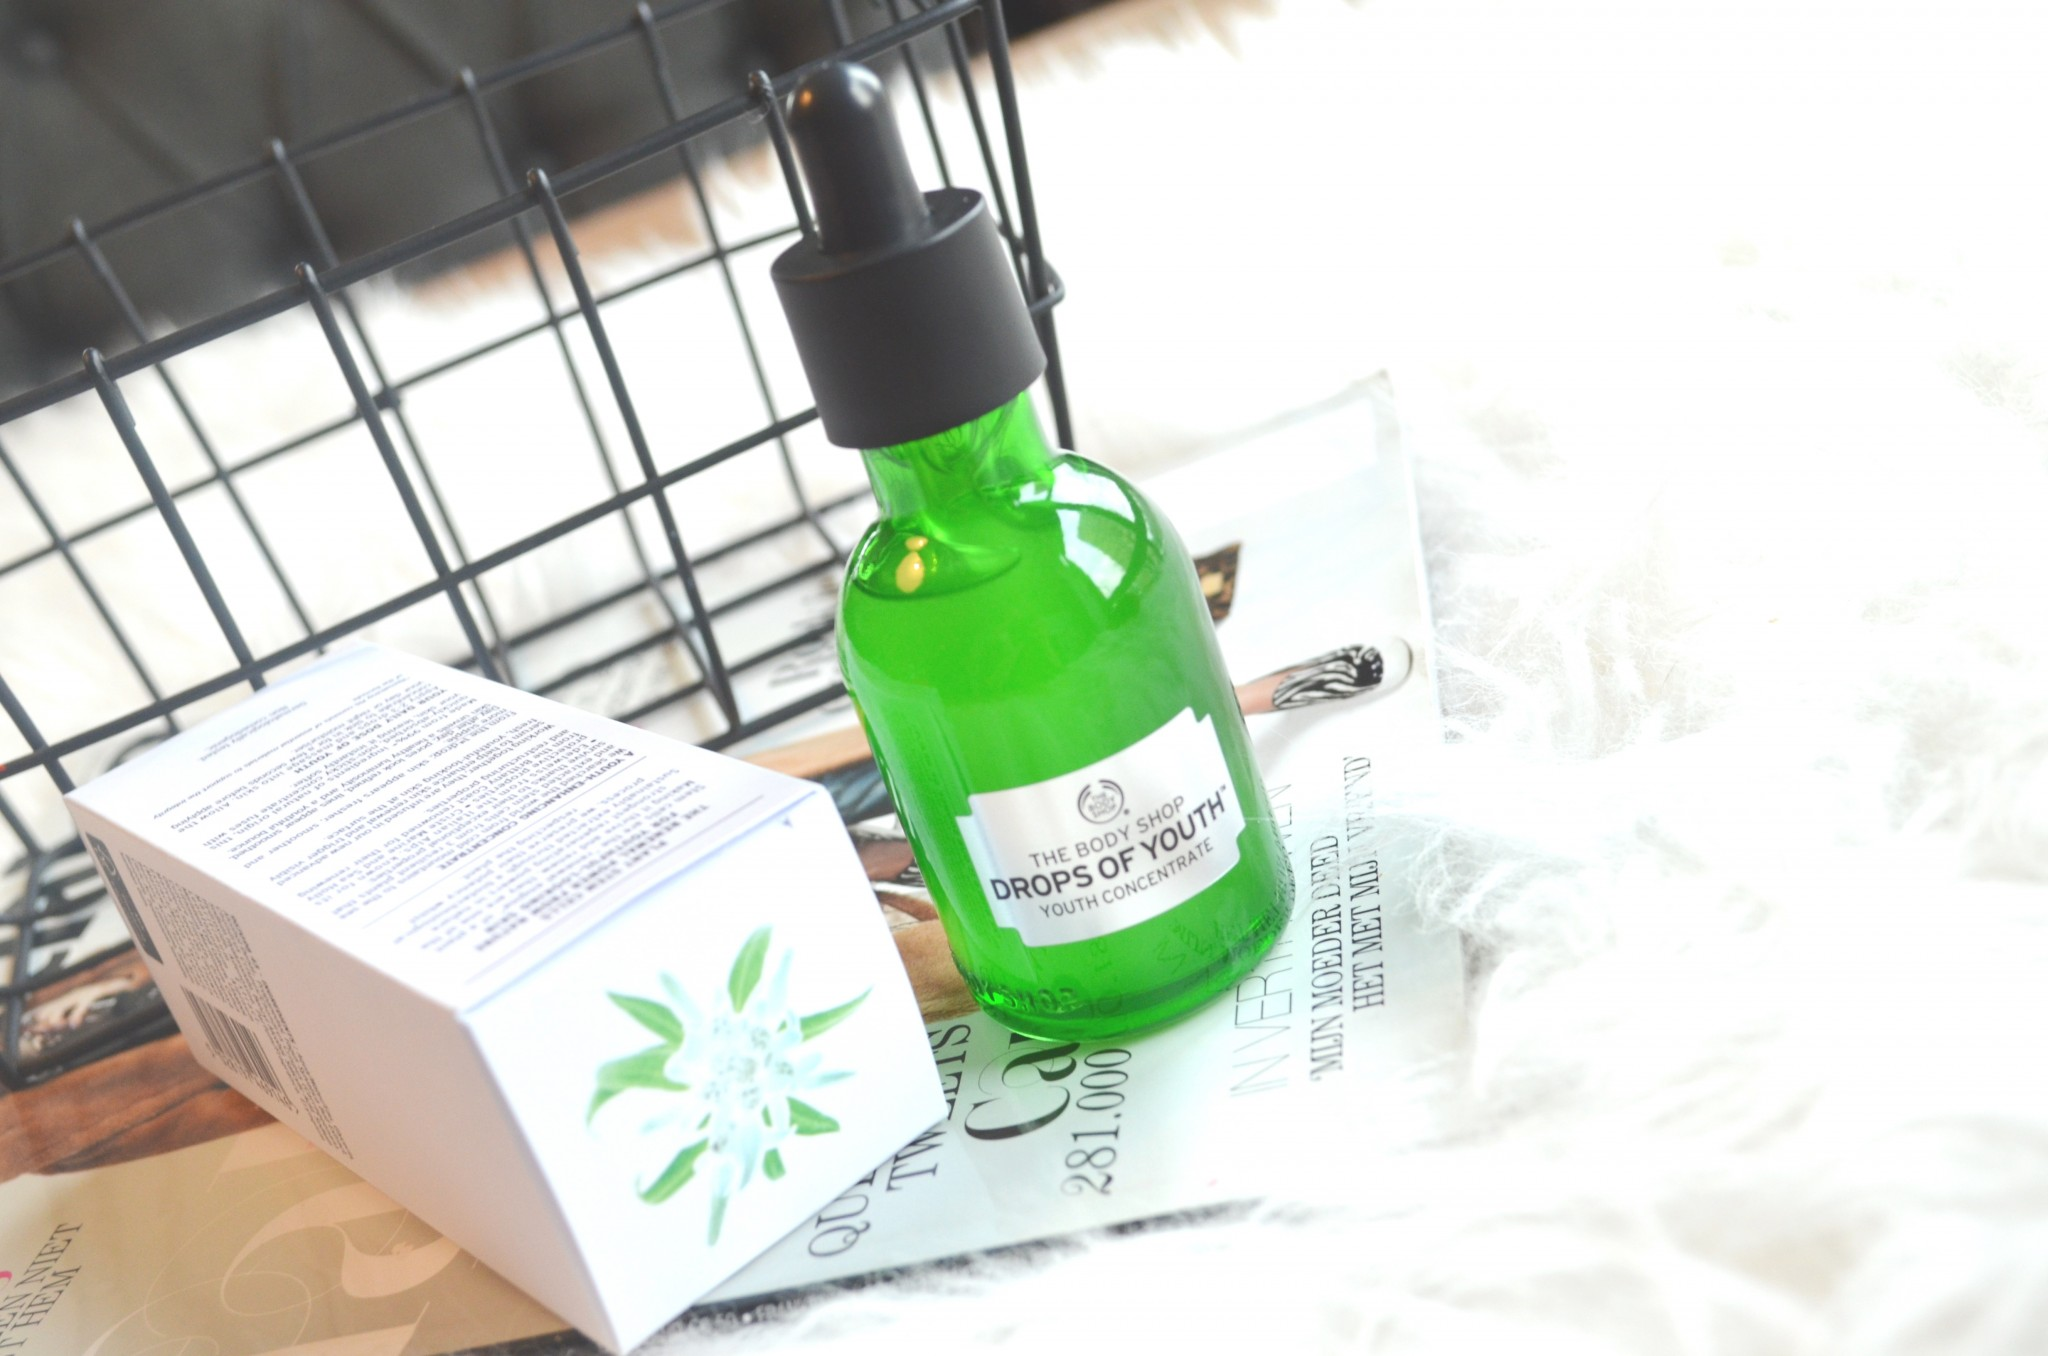 DSC 7411 - The Body Shop Drops of Youth Review